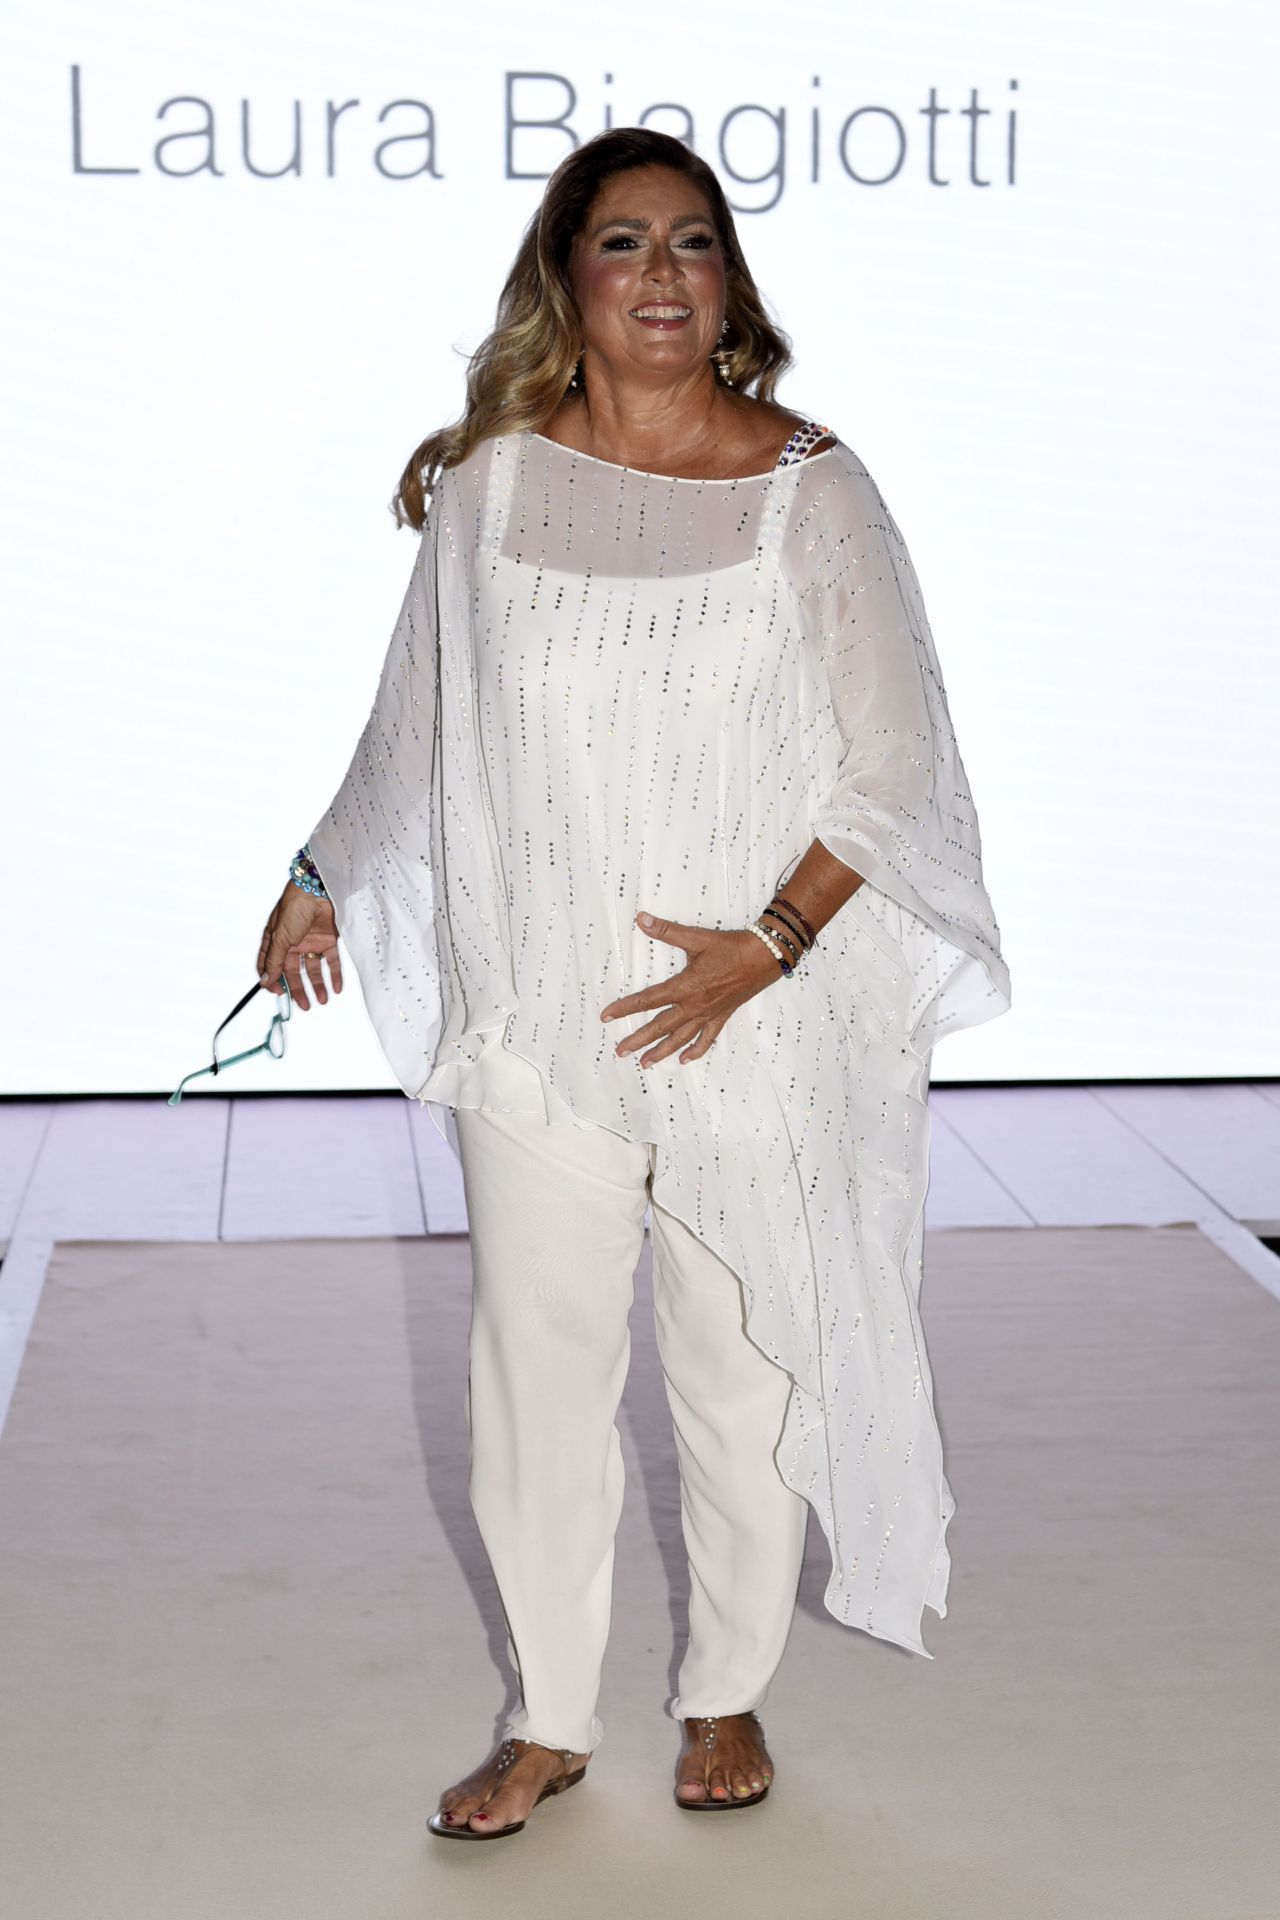 Romina Power Laura Biagiotti Show In Milan 09 24 2017 Laura